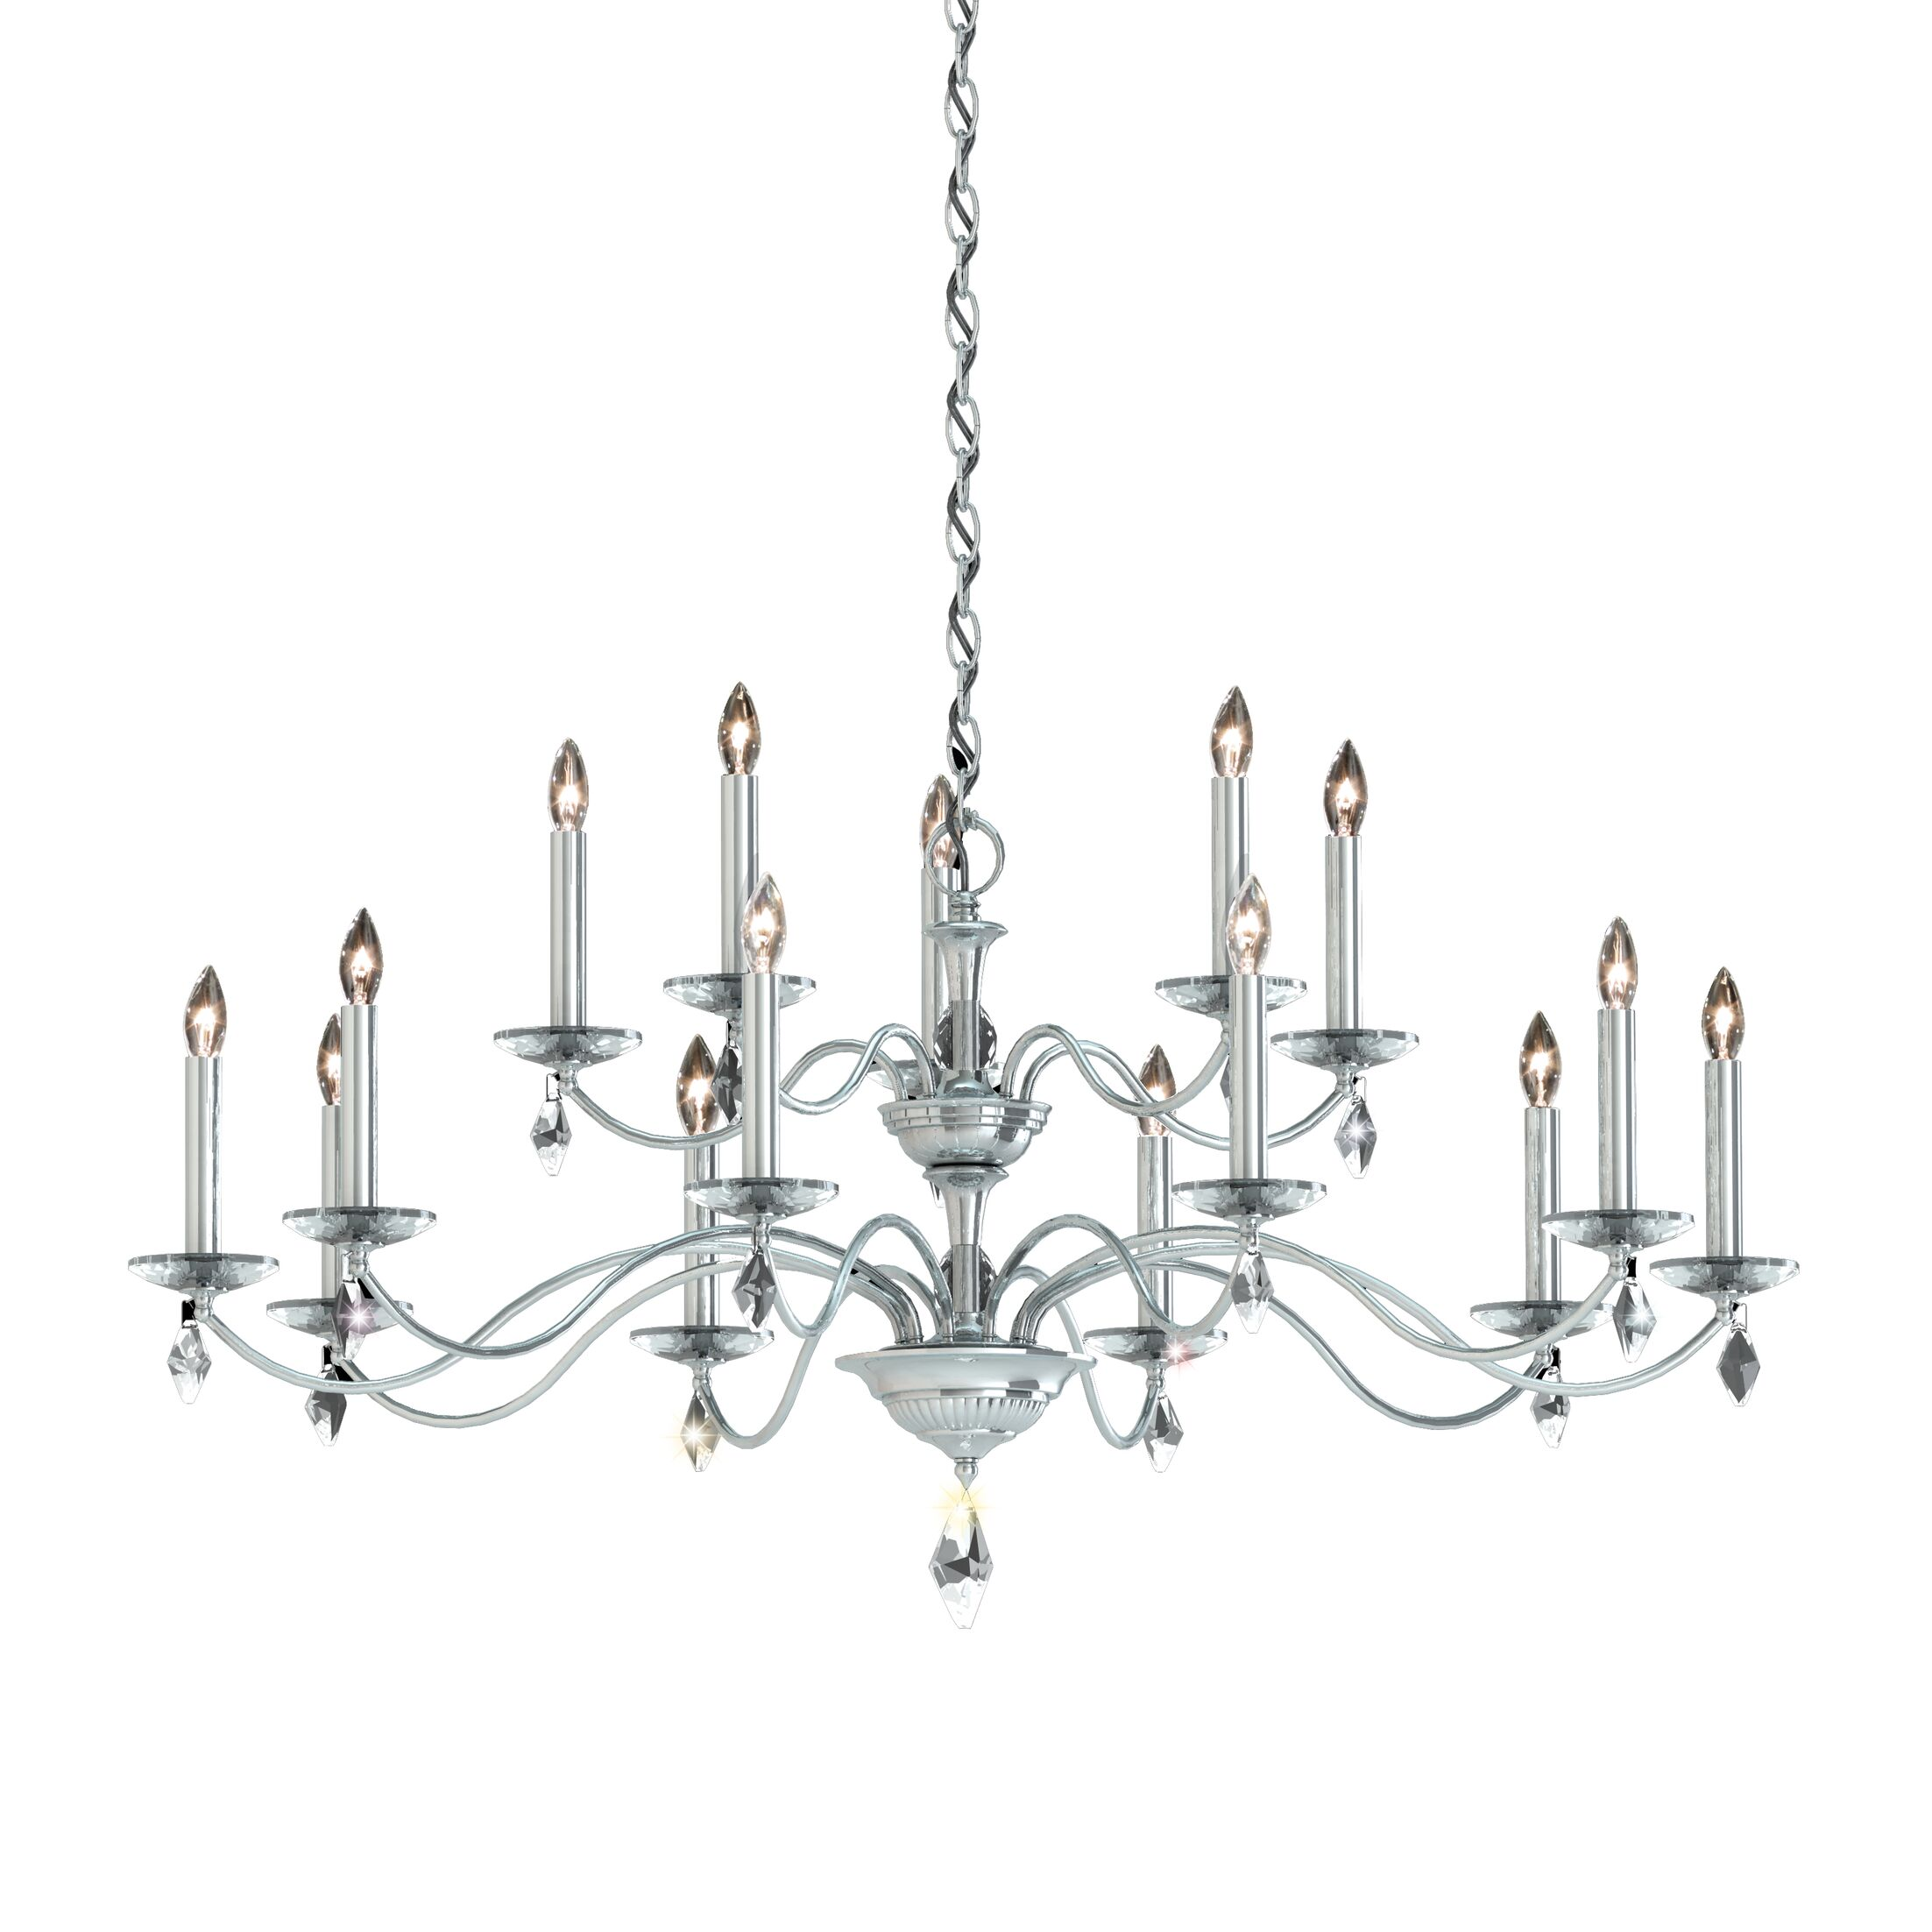 Modique 2 Tier 15-Light Chandelier Crystal Grade: Swarovski�, Finish: Ferro Black